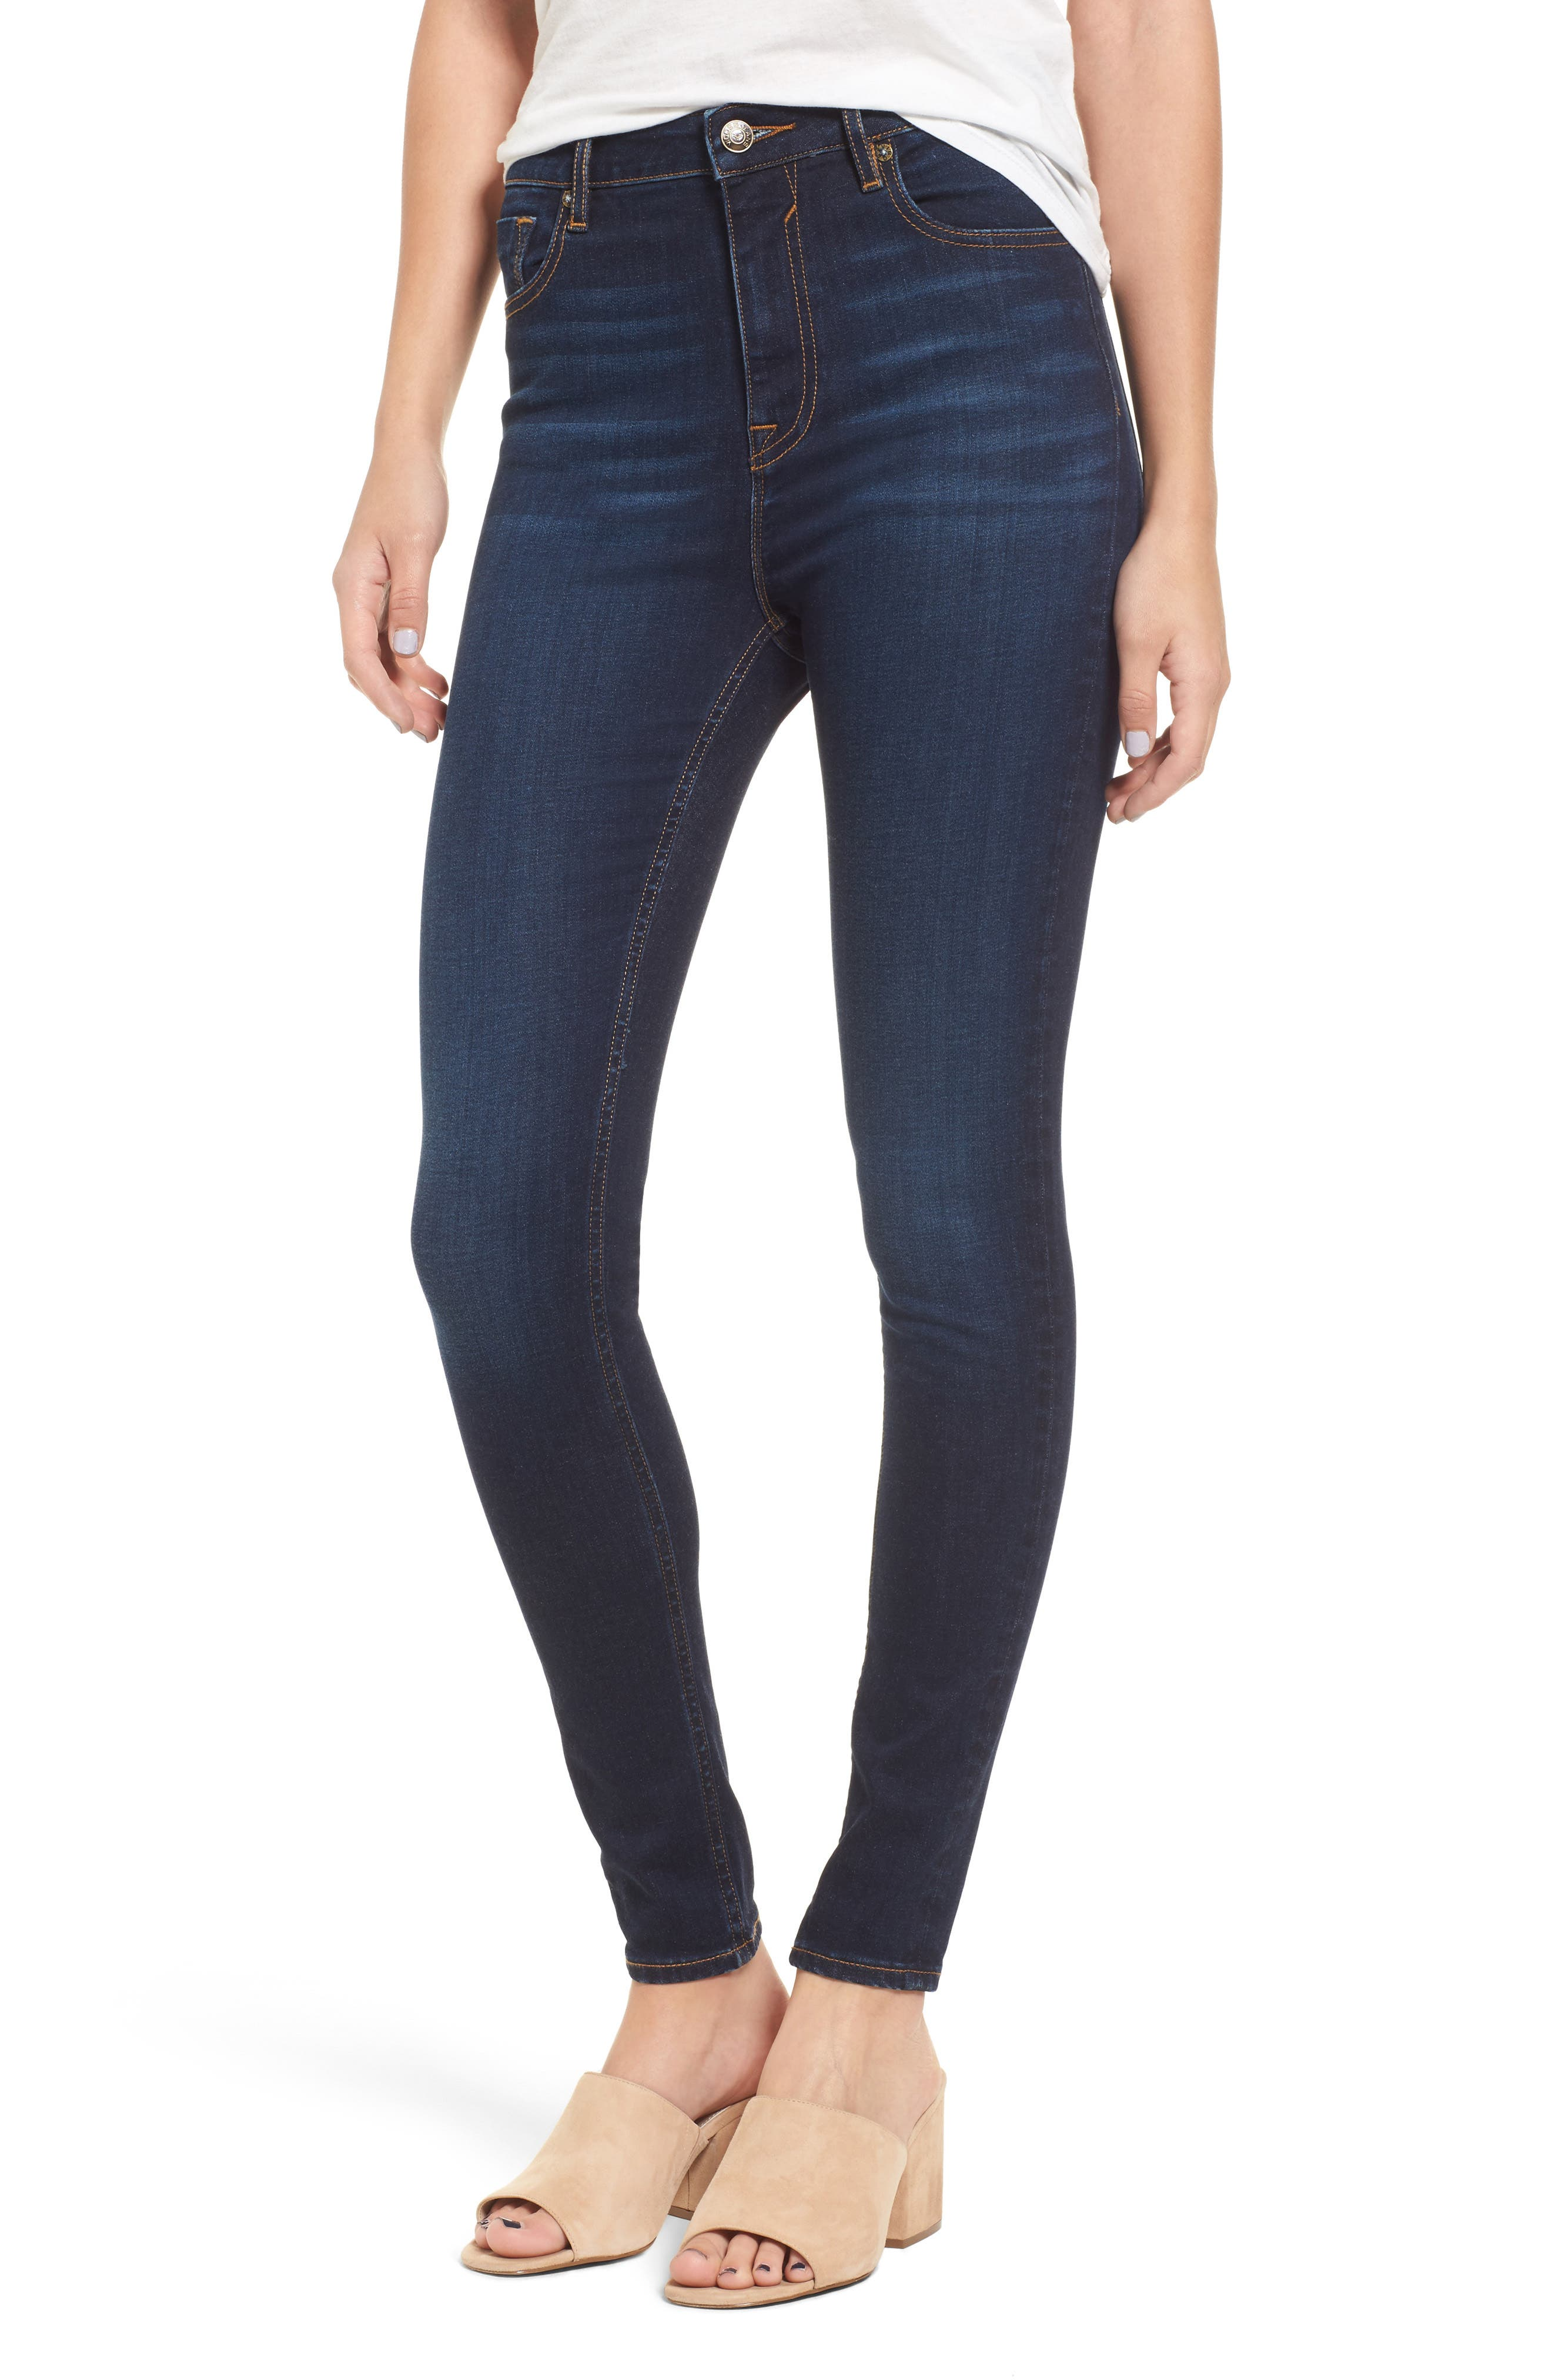 Alternate Image 1 Selected - Vigoss Rebel High Rise Skinny Jeans